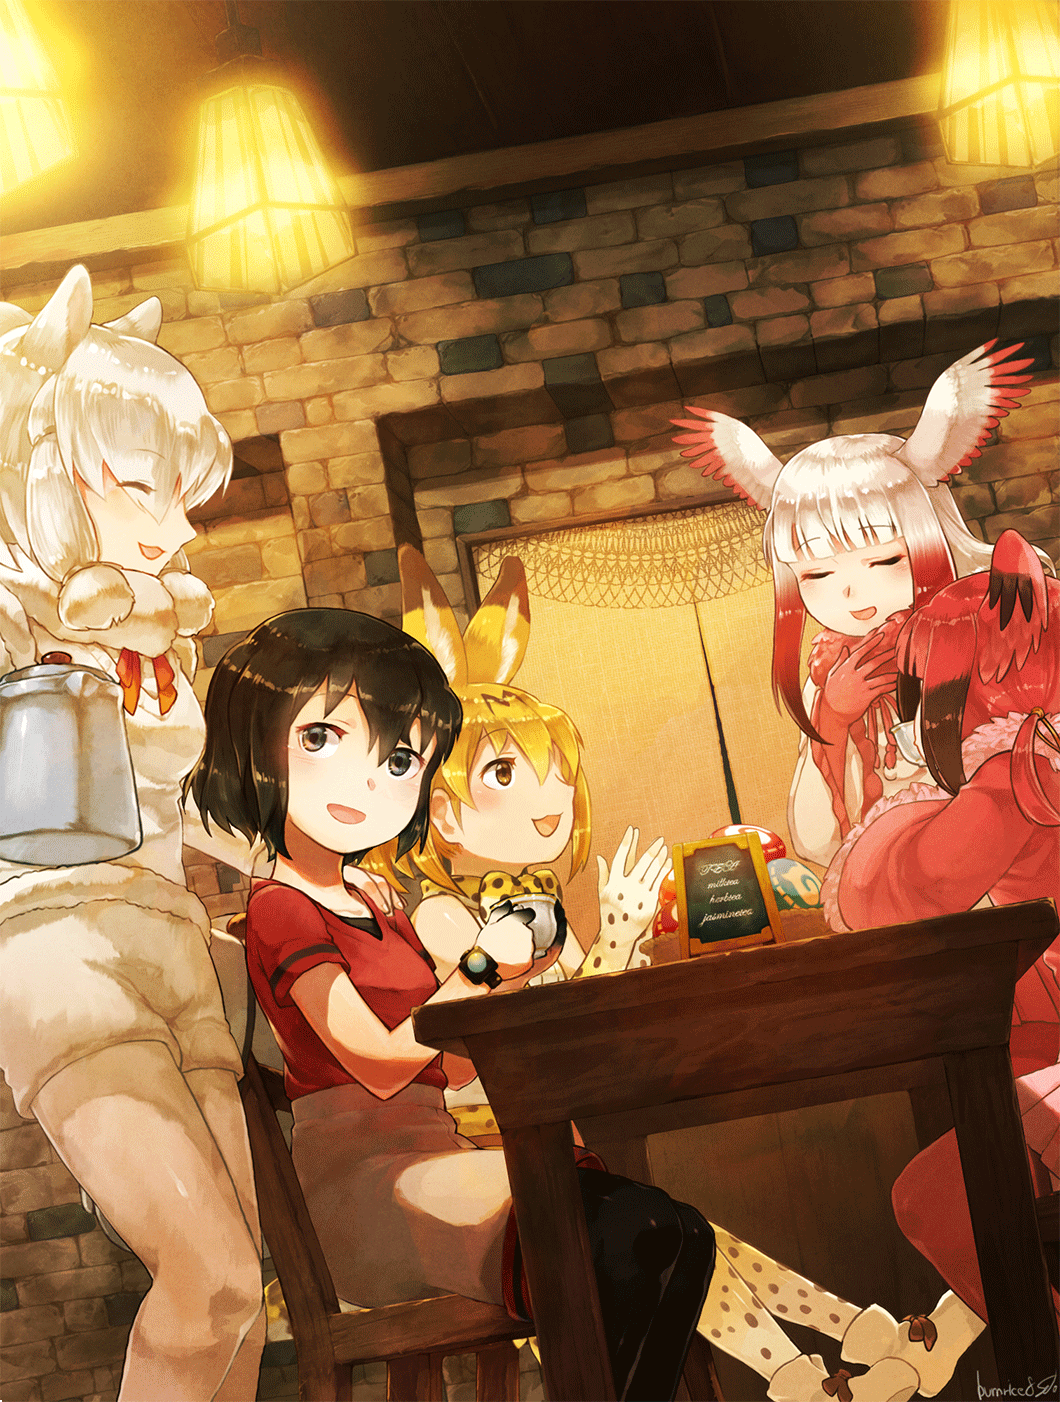 5girls :3 alpaca_ears alpaca_girl alpaca_suri_(kemono_friends) animal_ears bangs bare_shoulders bird_wings black_hair black_legwear blonde_hair blue_eyes bow bowtie closed_eyes commentary_request cup elbow_gloves extra_ears eyebrows_visible_through_hair food frilled_sleeves frills fur_collar fur_trim gloves hair_bun hair_over_one_eye hair_tubes hand_on_another's_shoulder hand_on_own_chest head_wings high-waist_skirt highres indoors japanese_crested_ibis_(kemono_friends) japari_bun kaban_(kemono_friends) kemono_friends long_hair long_sleeves multicolored_hair multiple_girls neck_ribbon no_hat no_headwear open_mouth pantyhose pleated_skirt print_gloves print_legwear print_neckwear print_skirt red_fur red_legwear red_neckwear red_shirt redhead ribbon scarlet_ibis_(kemono_friends) serval_(kemono_friends) serval_ears serval_girl serval_print serval_tail seto_(harunadragon) shirt short_hair short_twintails shorts sidelocks sitting skirt sleeveless smile sweater t-shirt table tail tea teacup teapot thigh-highs twintails vest watch white_hair white_legwear white_shirt wings yellow_eyes